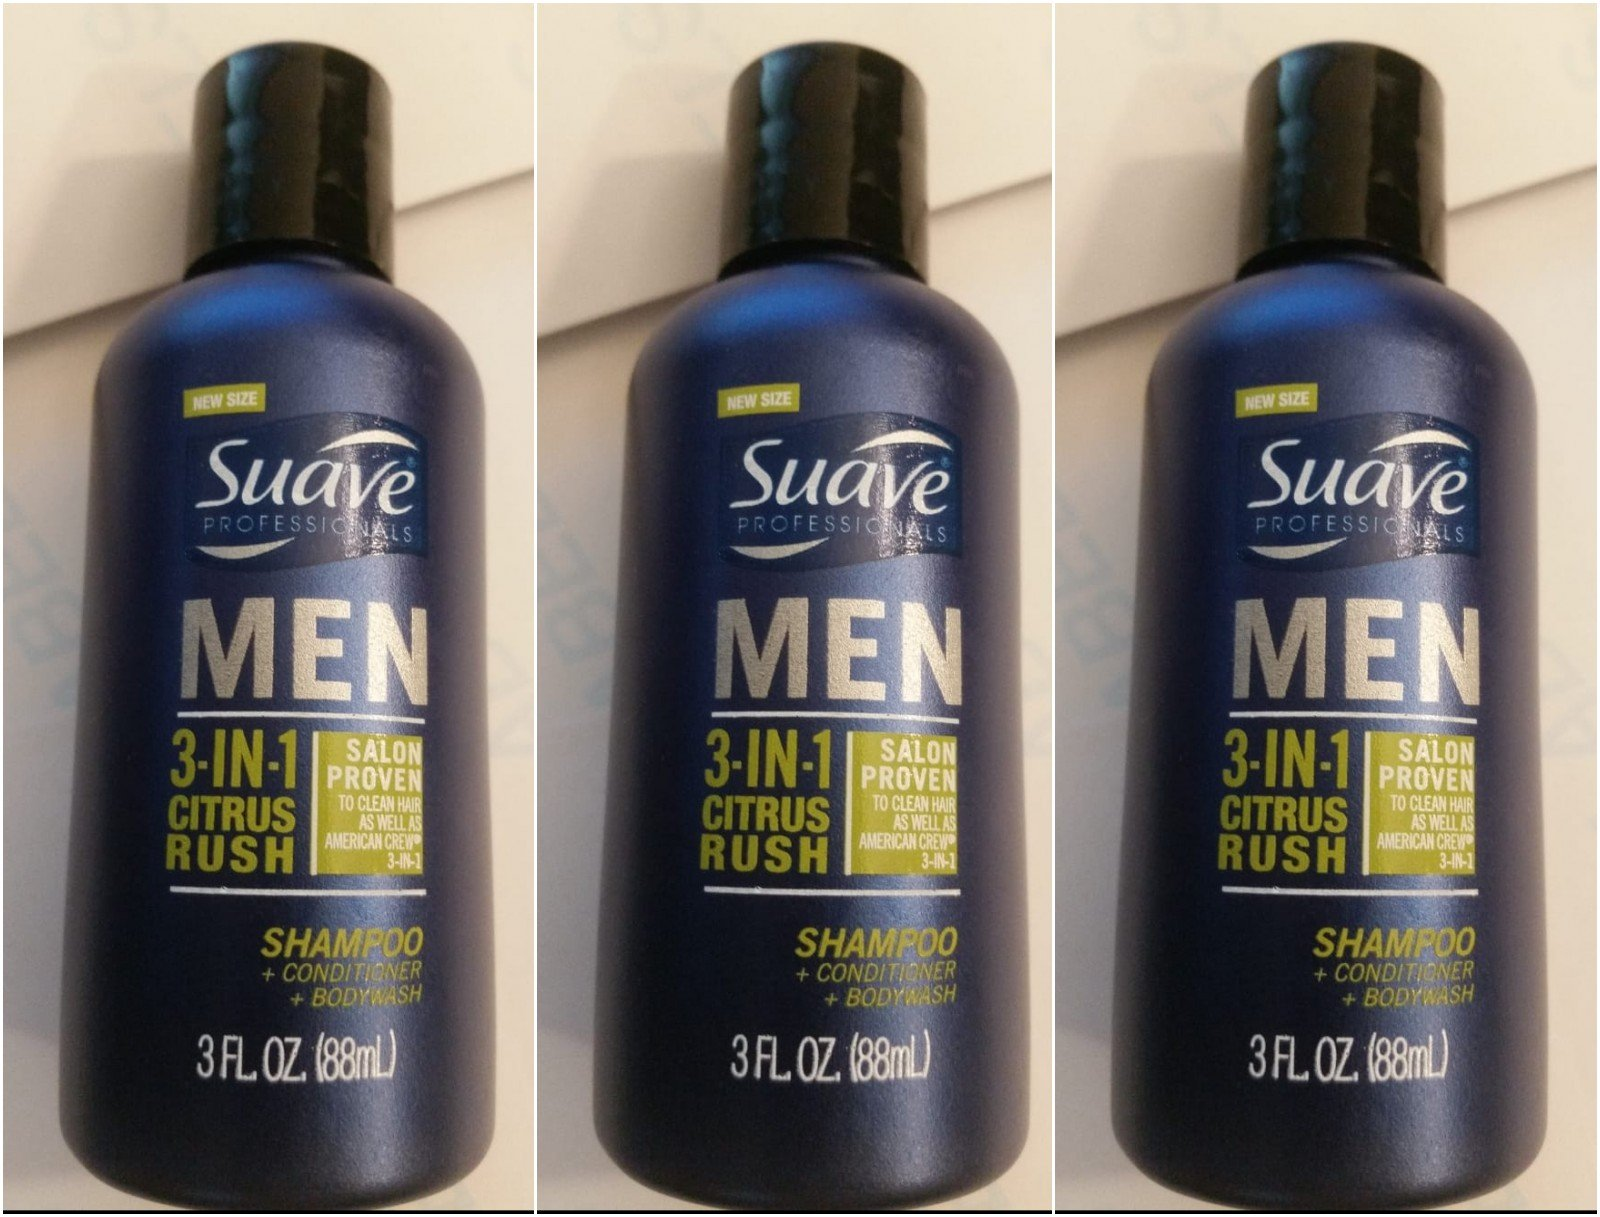 Suave Men 3-in-1 Shampoo + Conditioner + Body Wash Citrus Rush 3 oz Travel Size (pack of 3) by KT Travel